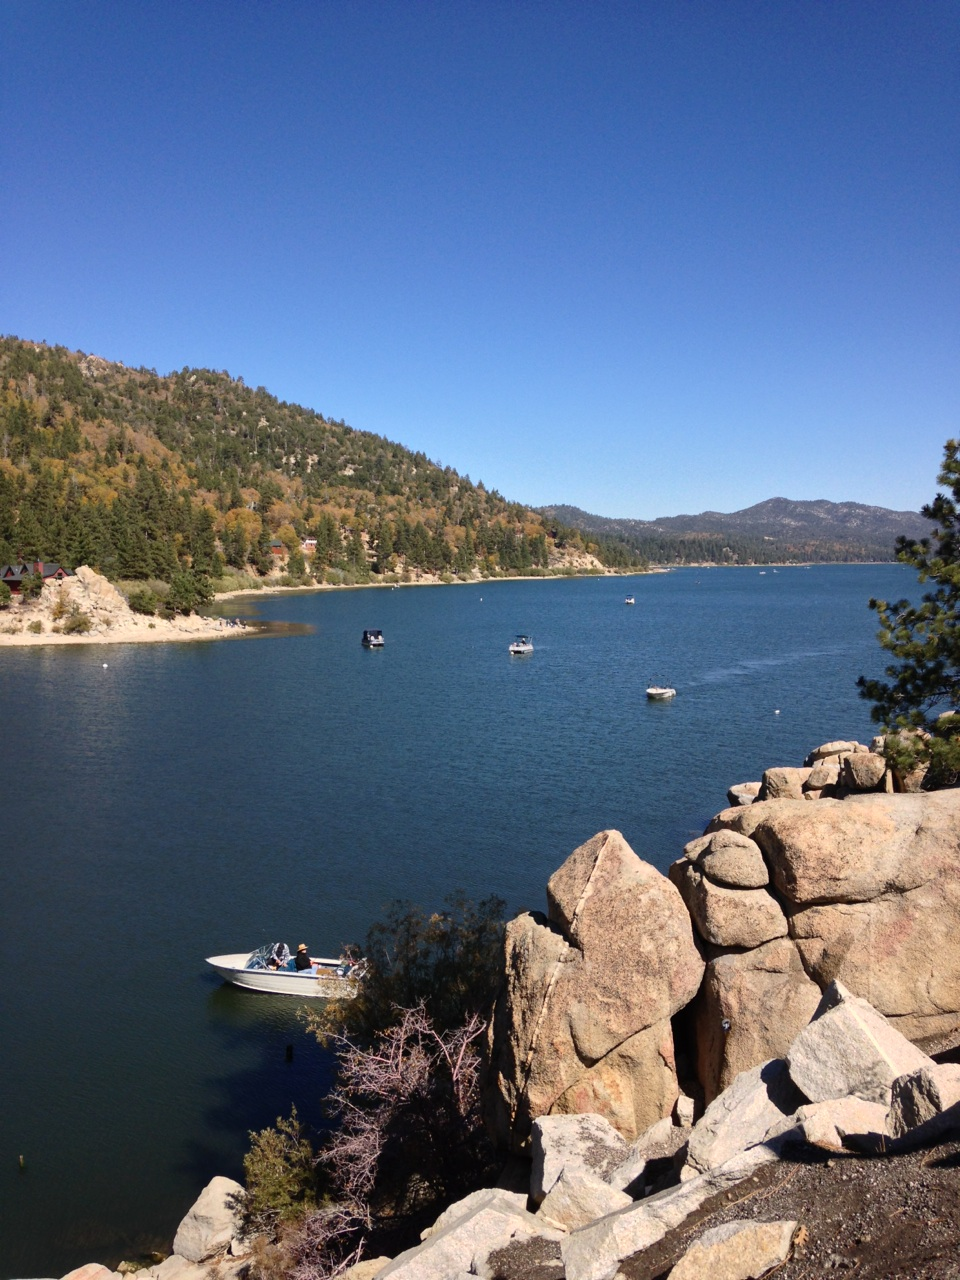 The location of the retreat is in the mountains of Big Bear Lake, California, at Pine Summit Christian Camp.